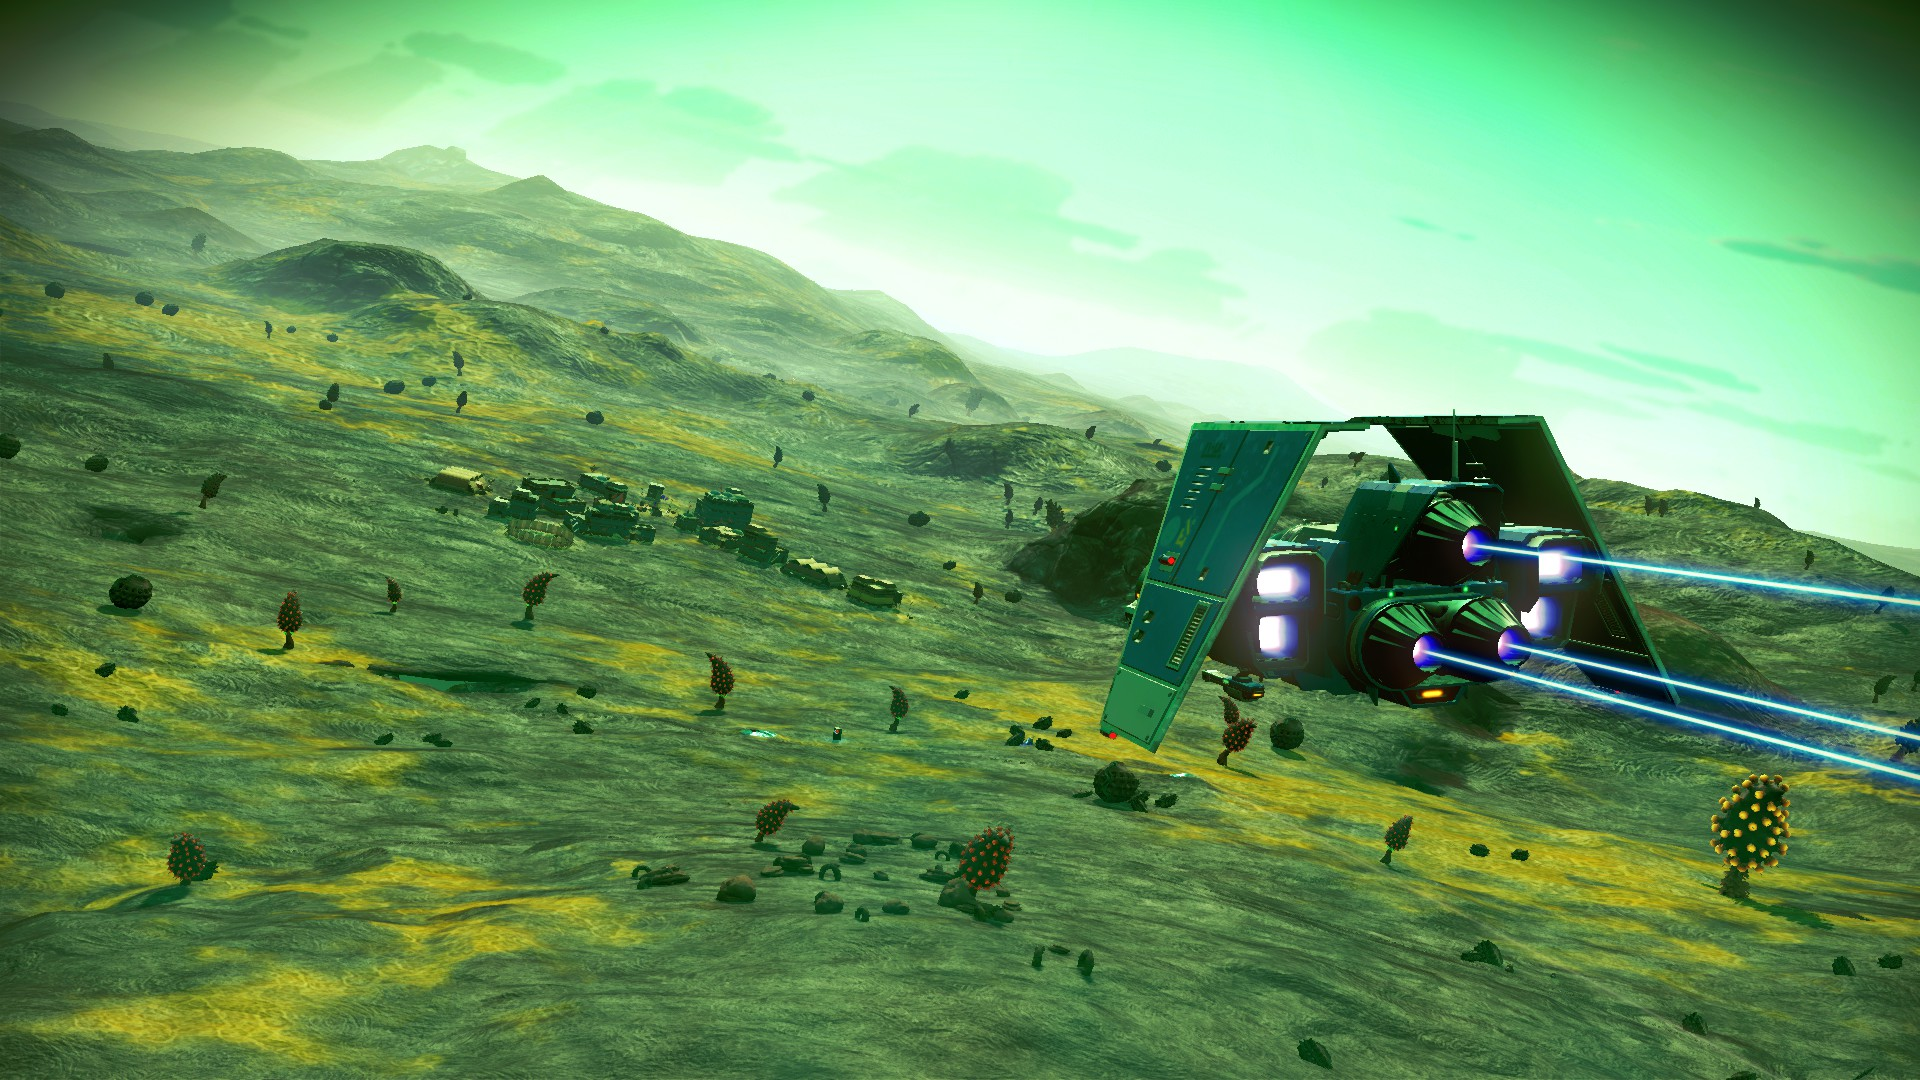 No Man's Sky - a ship flies above a green, fungal planet, towards a settlement in the distance.